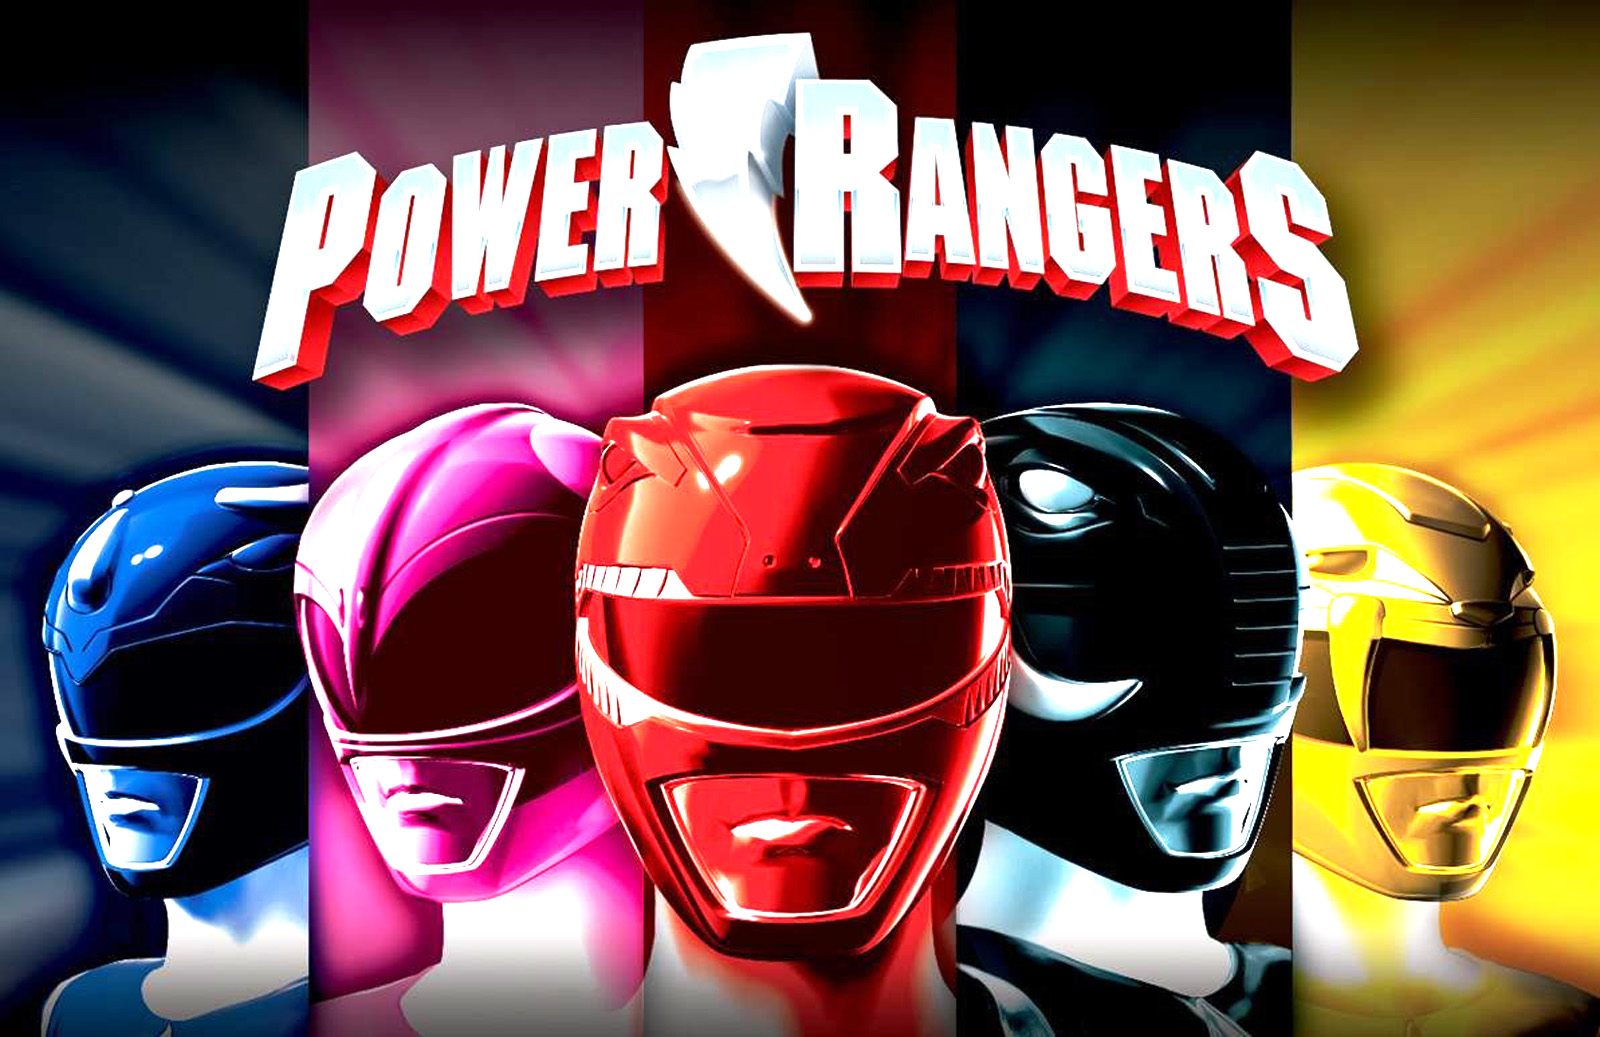 Power rangers desktop wallpapers desktop wallpapers power rangers buycottarizona